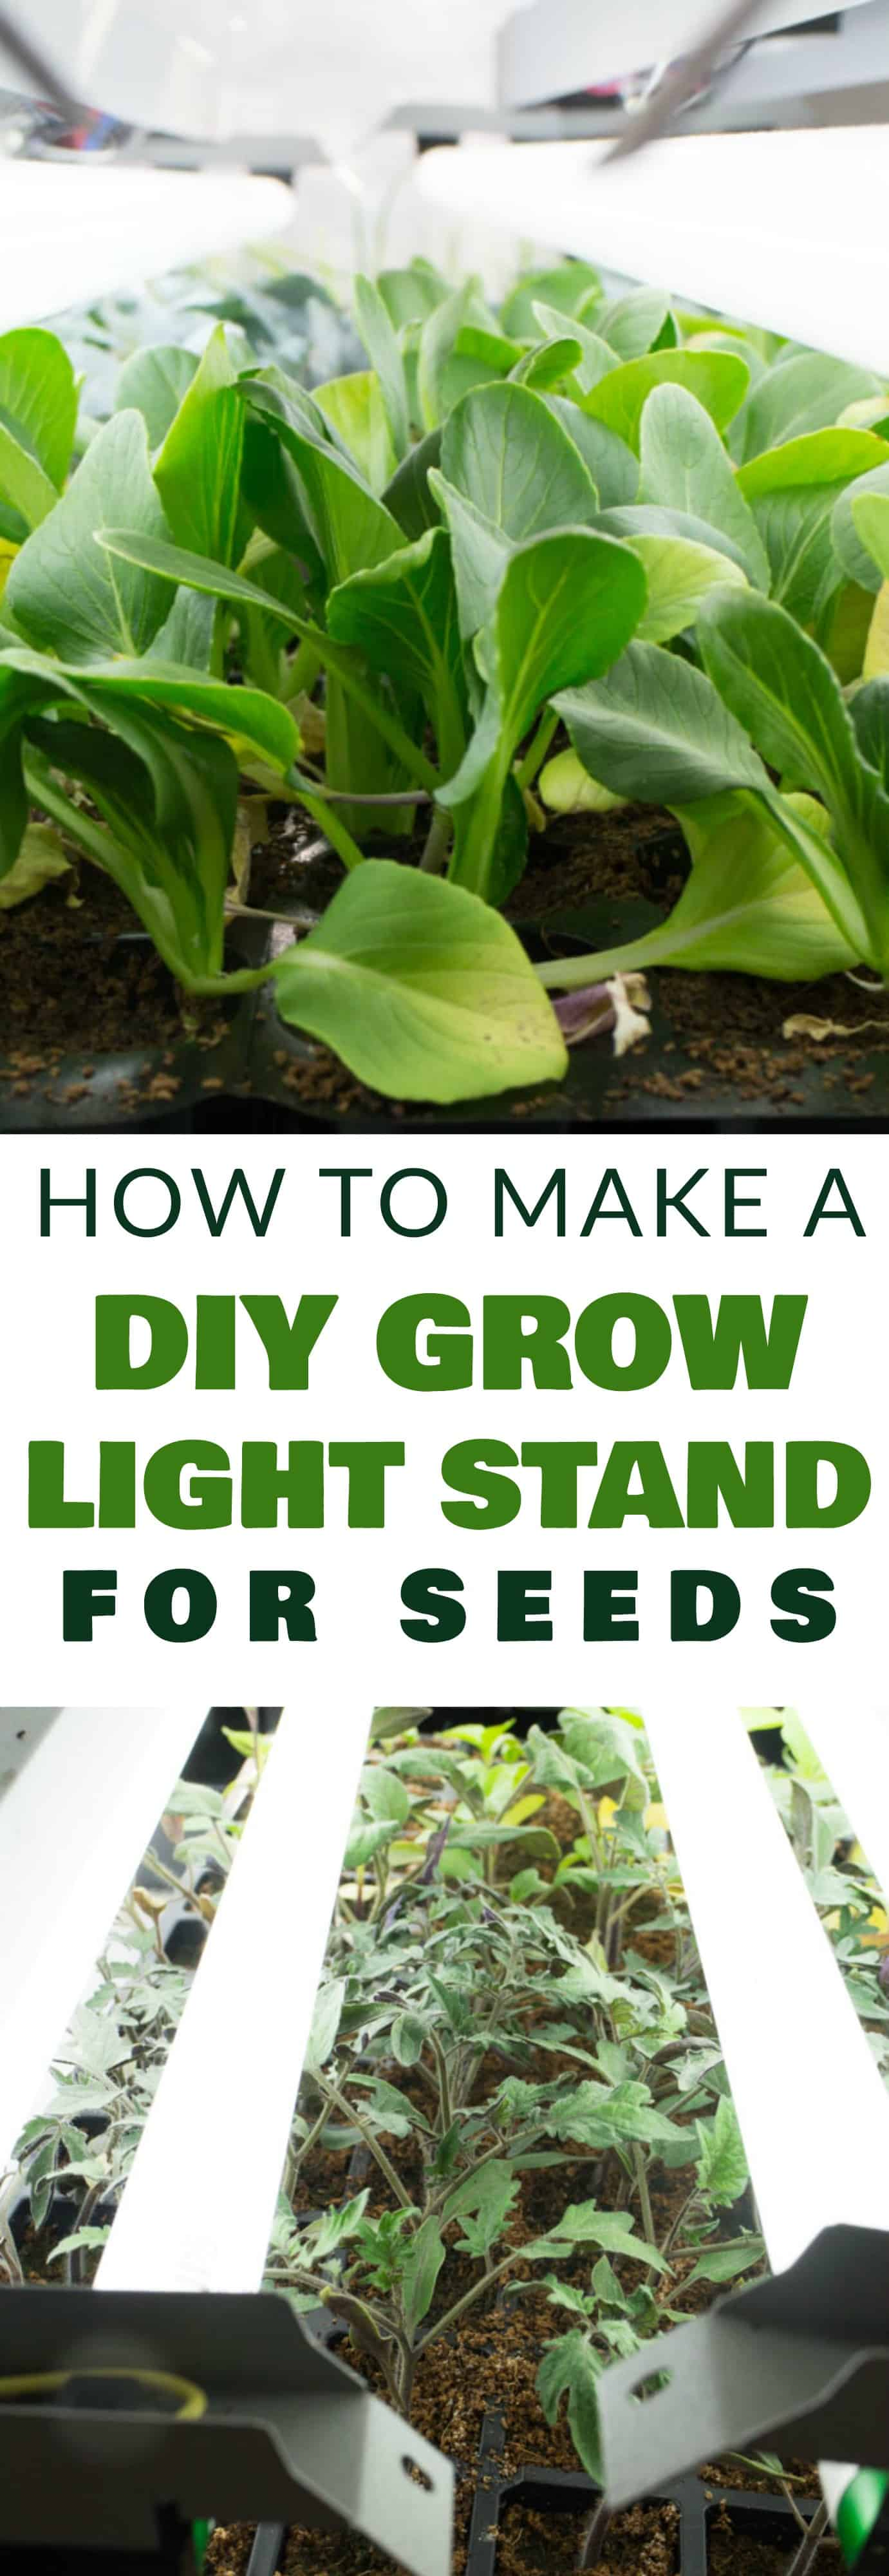 Garden MUST HAVE for starting your vegetable seeds!  With just a few supplies from the home improvement store you can make your own DIY Seed Grow Light Stand.  This is a easy project to make instead of buying a store bought light stand - saving you hundreds of dollars!  We use this for our seeds and they grow amazing - last Summer we picked over 1,000 pounds of vegetables!